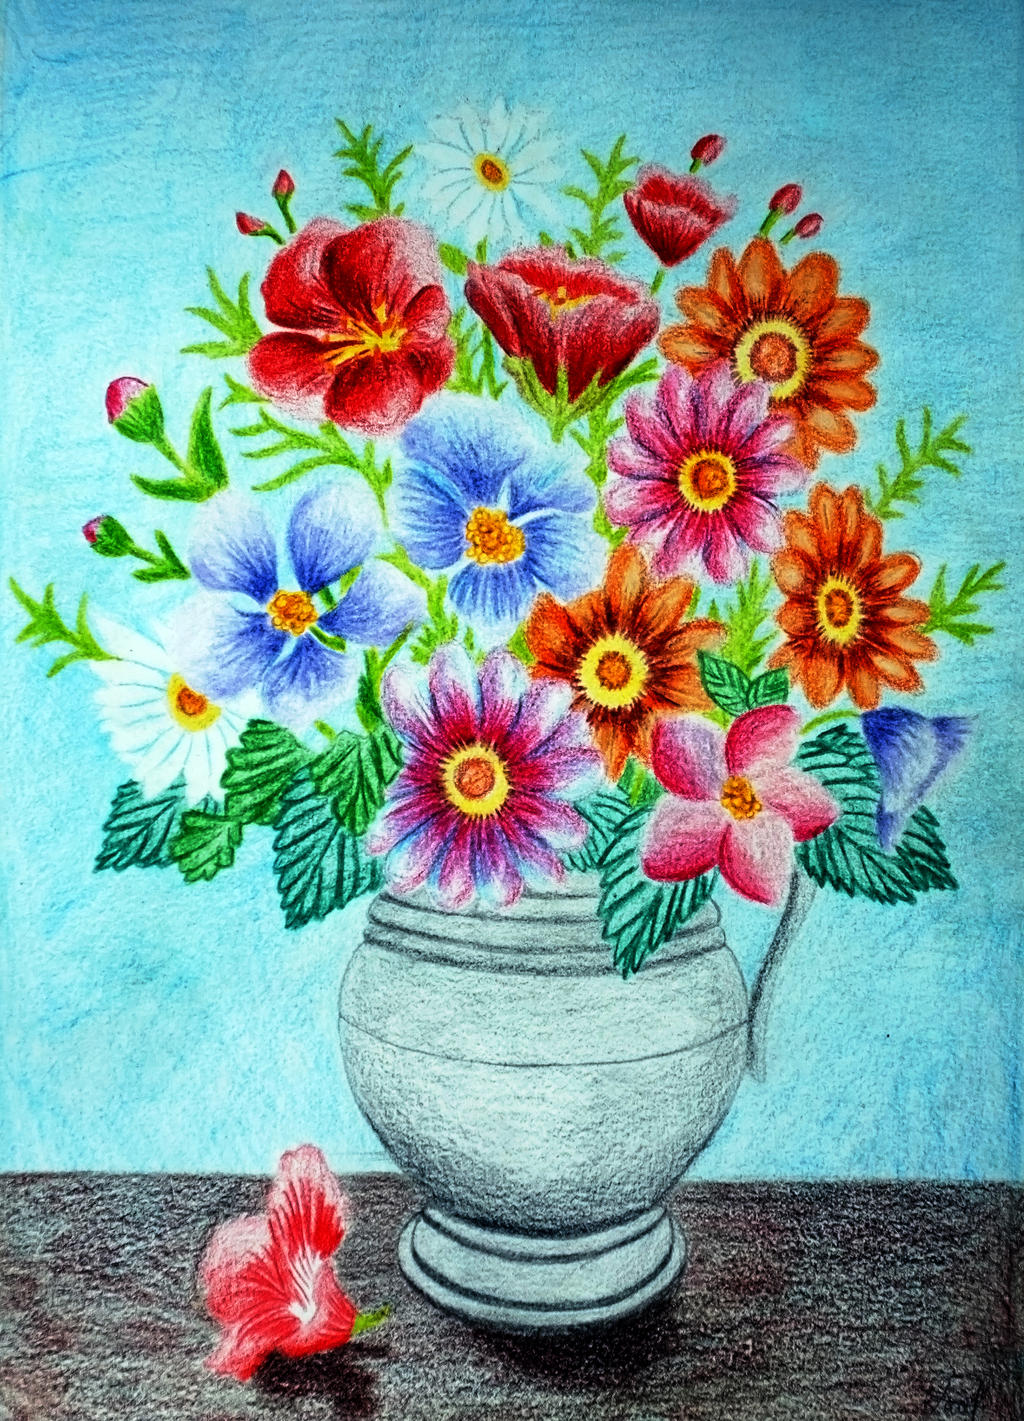 Flower vase in colored pencils ii by vendoritza on deviantart flower vase in colored pencils ii by vendoritza reviewsmspy